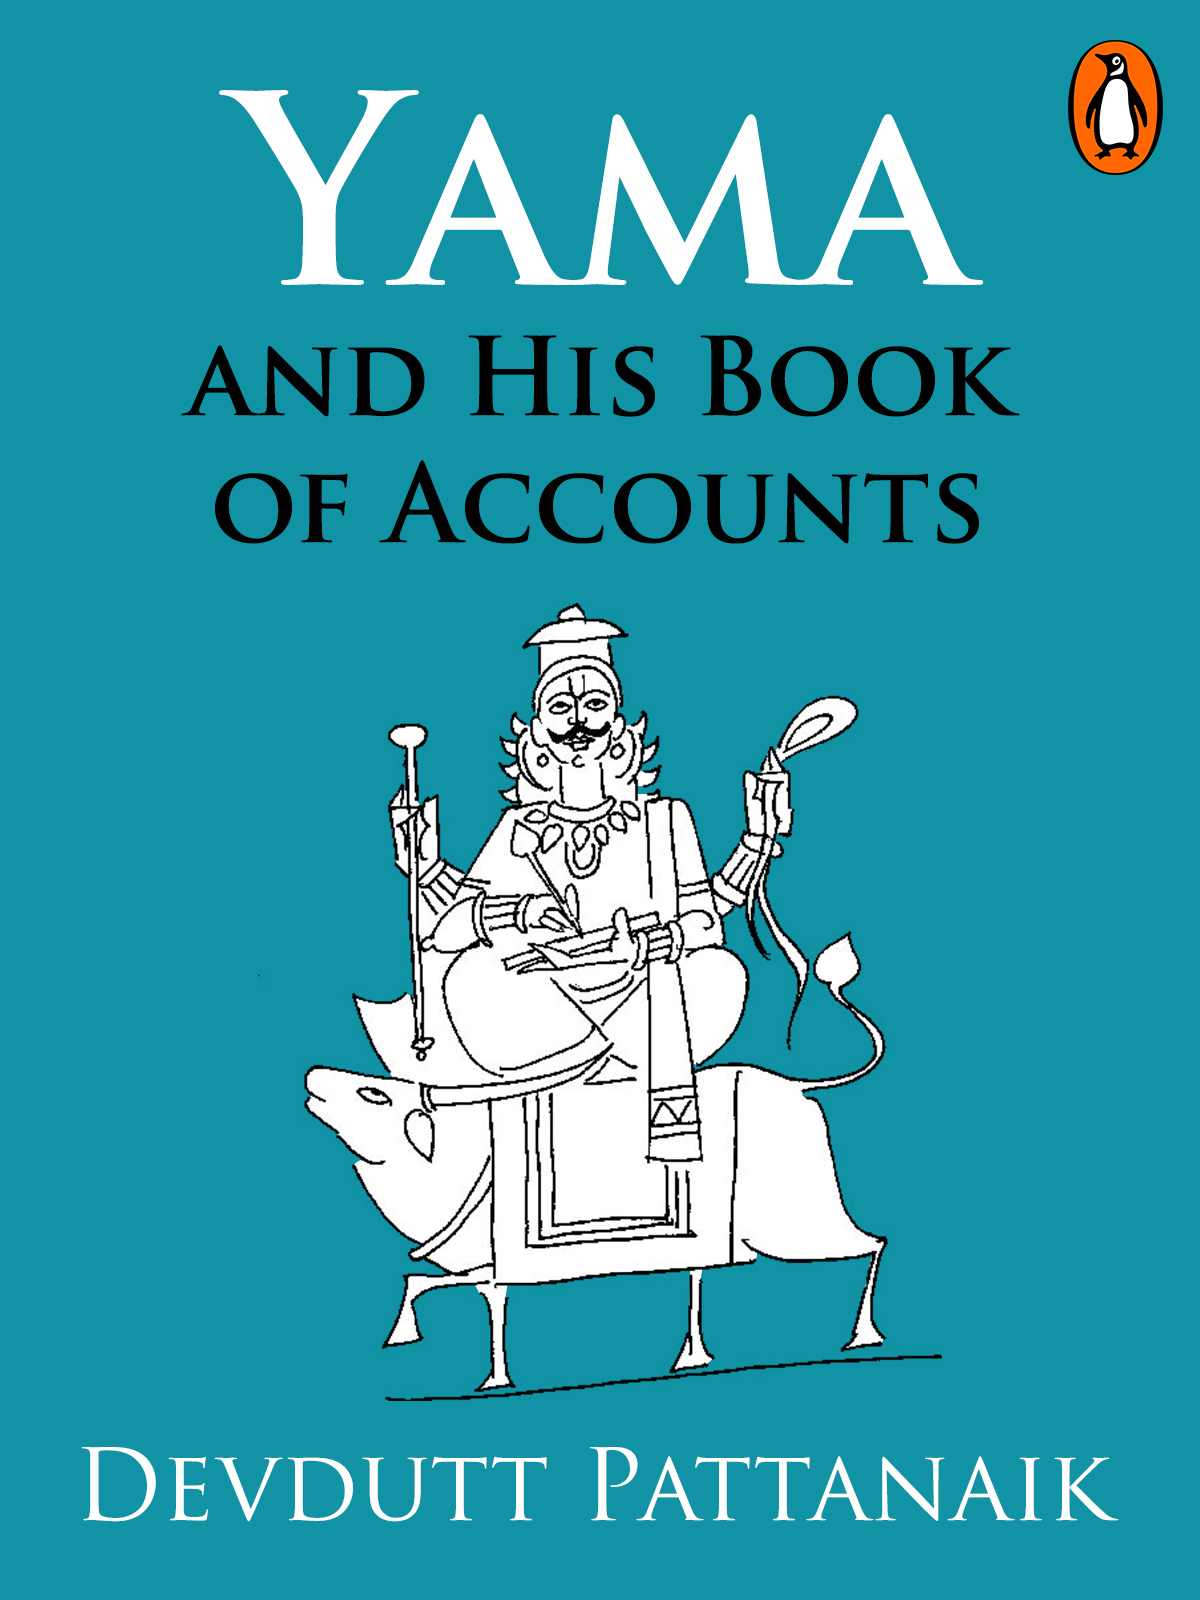 Yama and His Book of Accounts